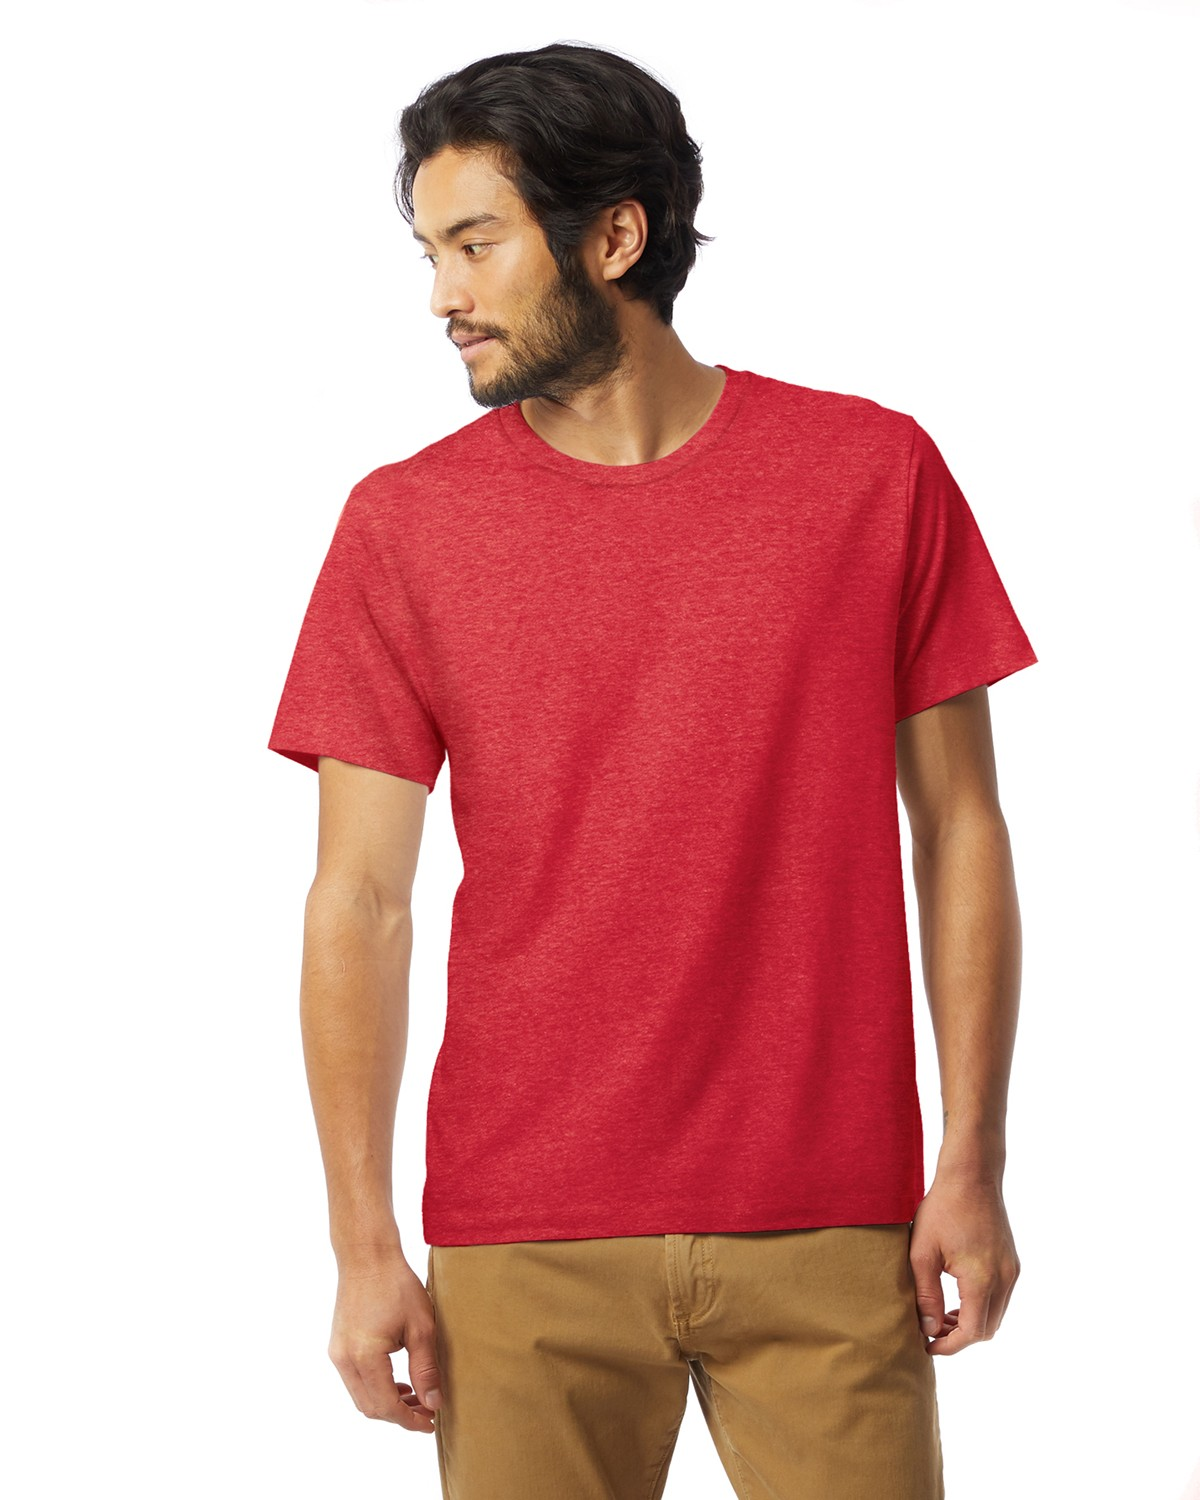 AA1070 Alternative HEATHER RED